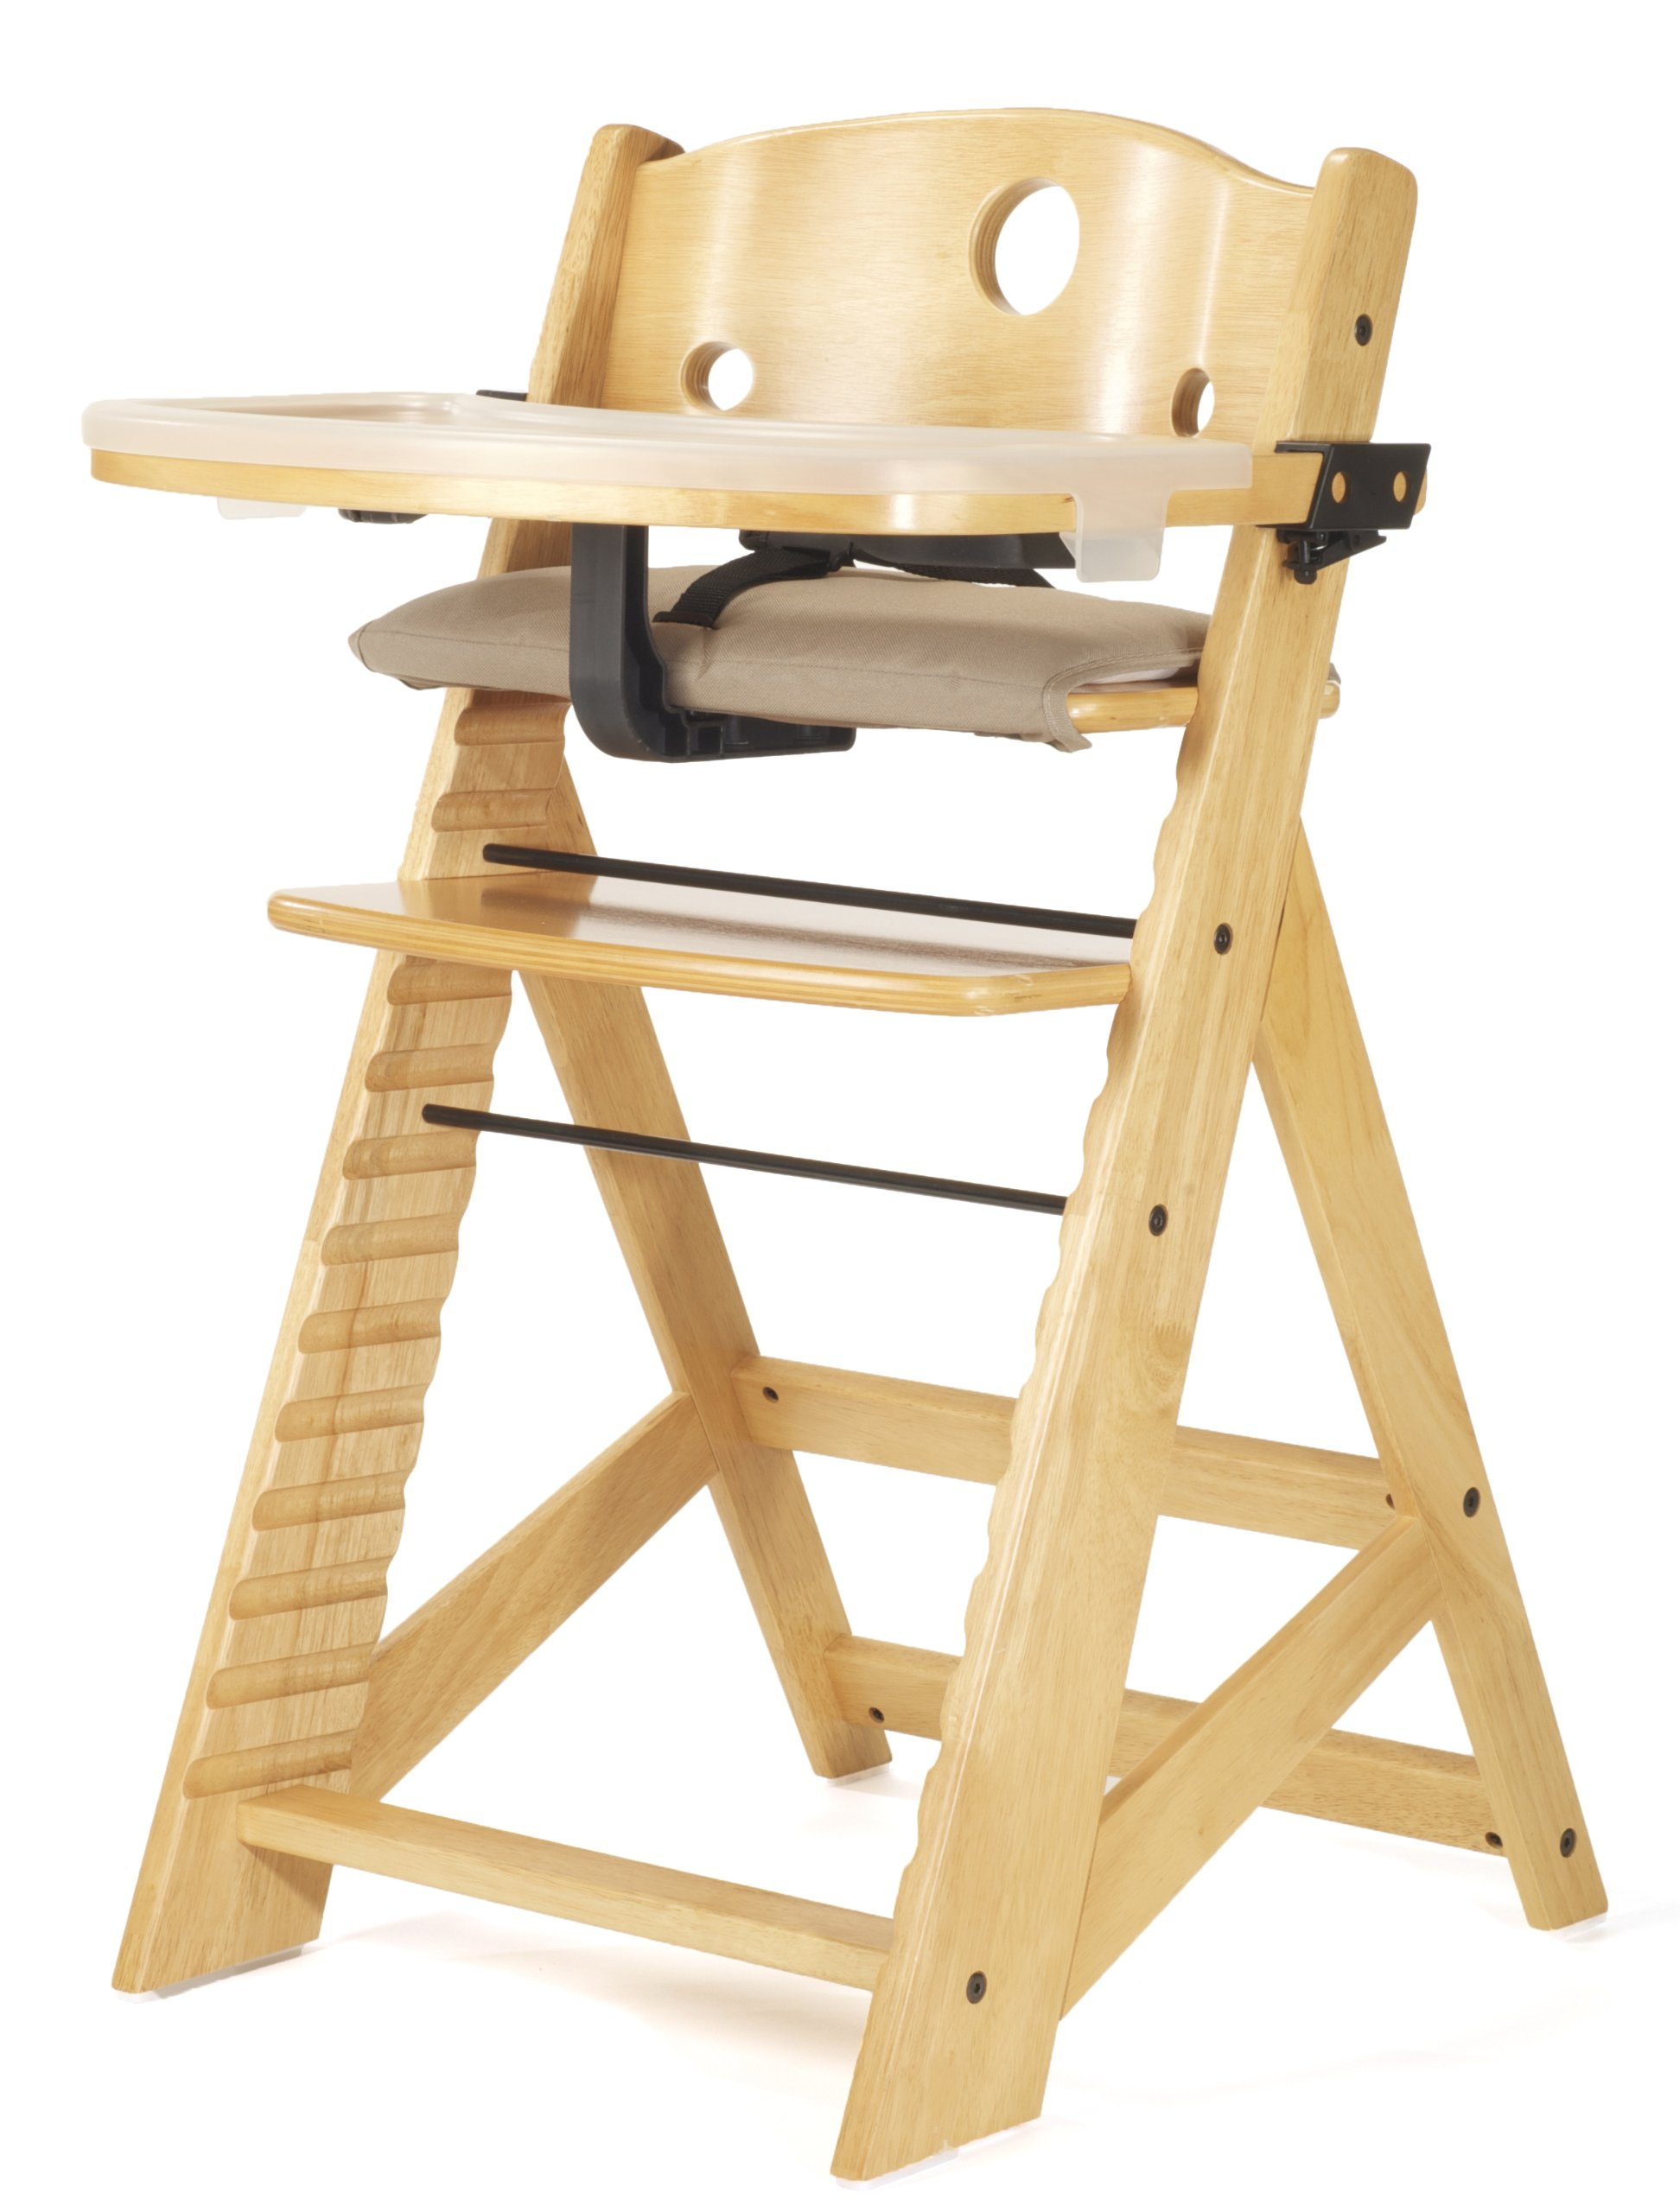 Keekaroo Height Right High Chair with Tray, Natural by Keekaroo